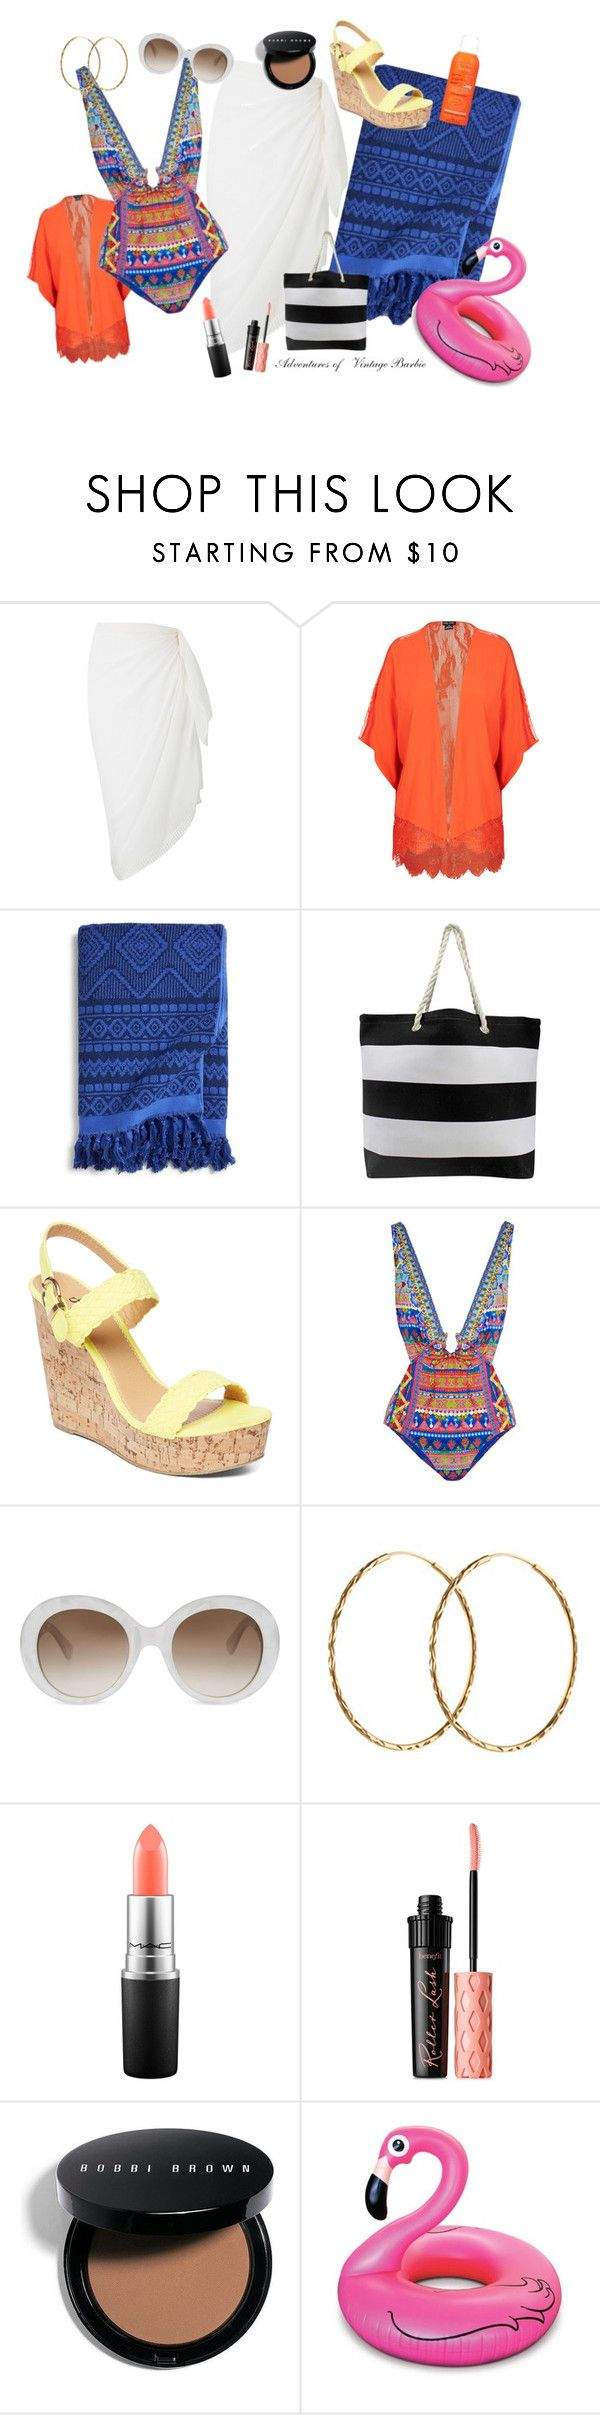 Poolside Fun by vintagebarbie17 on Polyvore featuring Phase Eight, Camilla, City Chic, Charles Albert, Pernille Corydon, Gucci, Bobbi Brown Cosmetics, MAC Cosmetics, Benefit and Avène